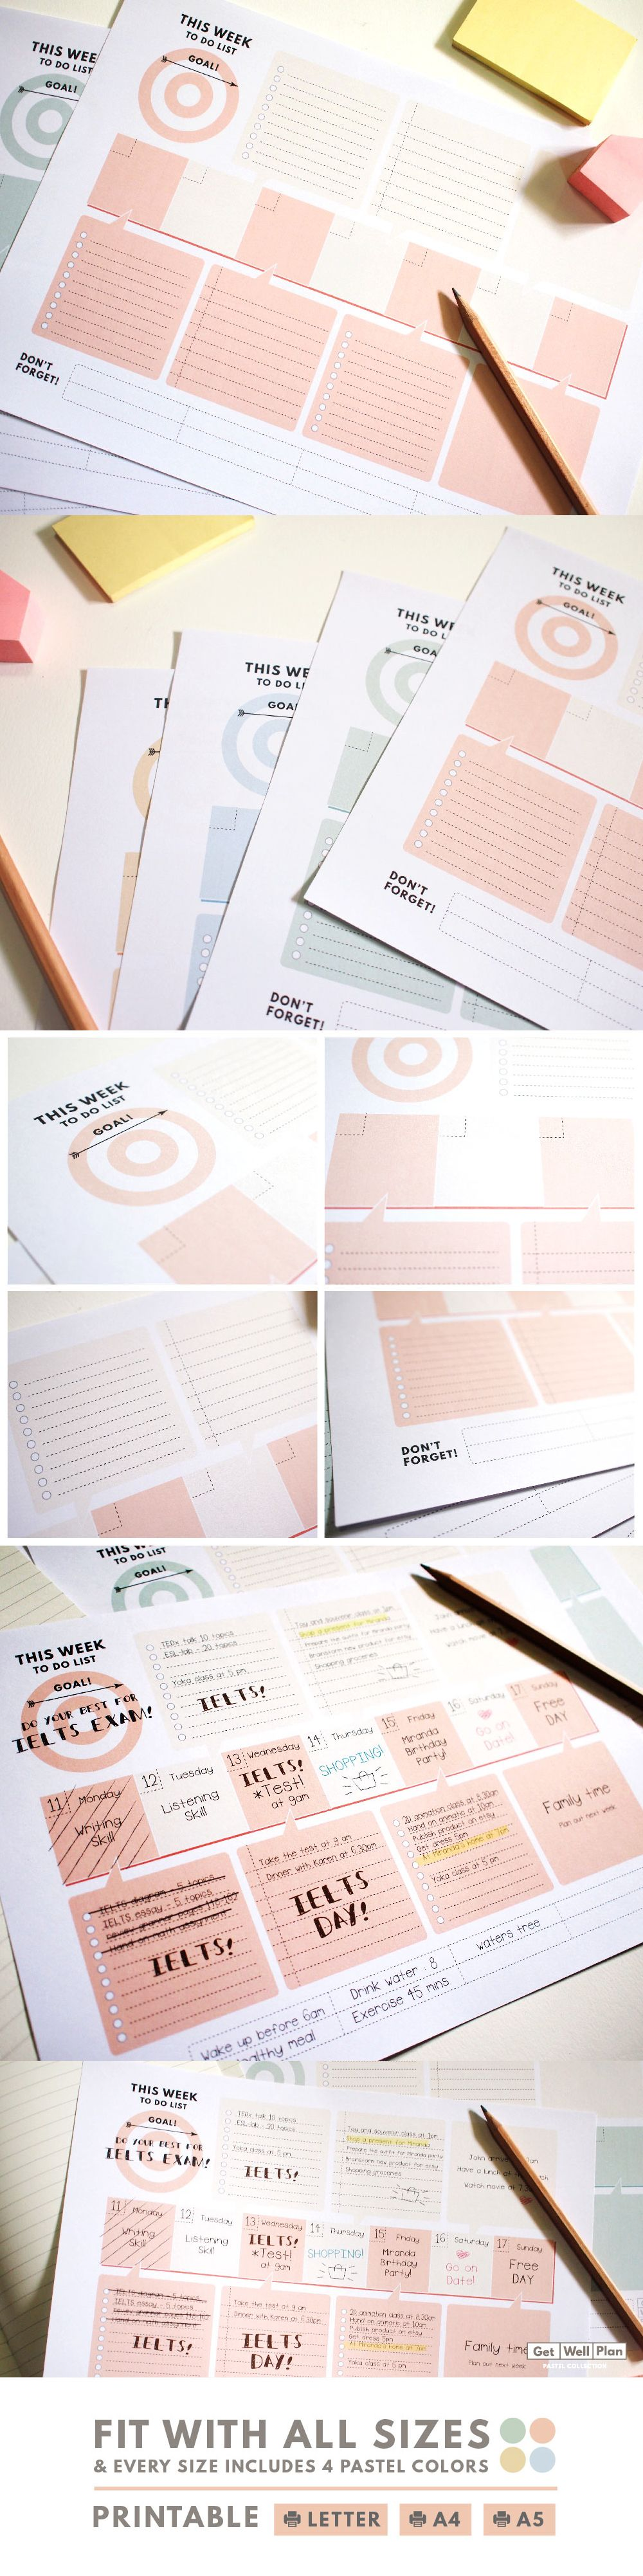 Weekly Planner Printable,Letter A4 A5 size horizontal weekly Goal planner, Weekly to do list, , Pastel color, minimal planner, GetWellPlan #dolistsorbooks